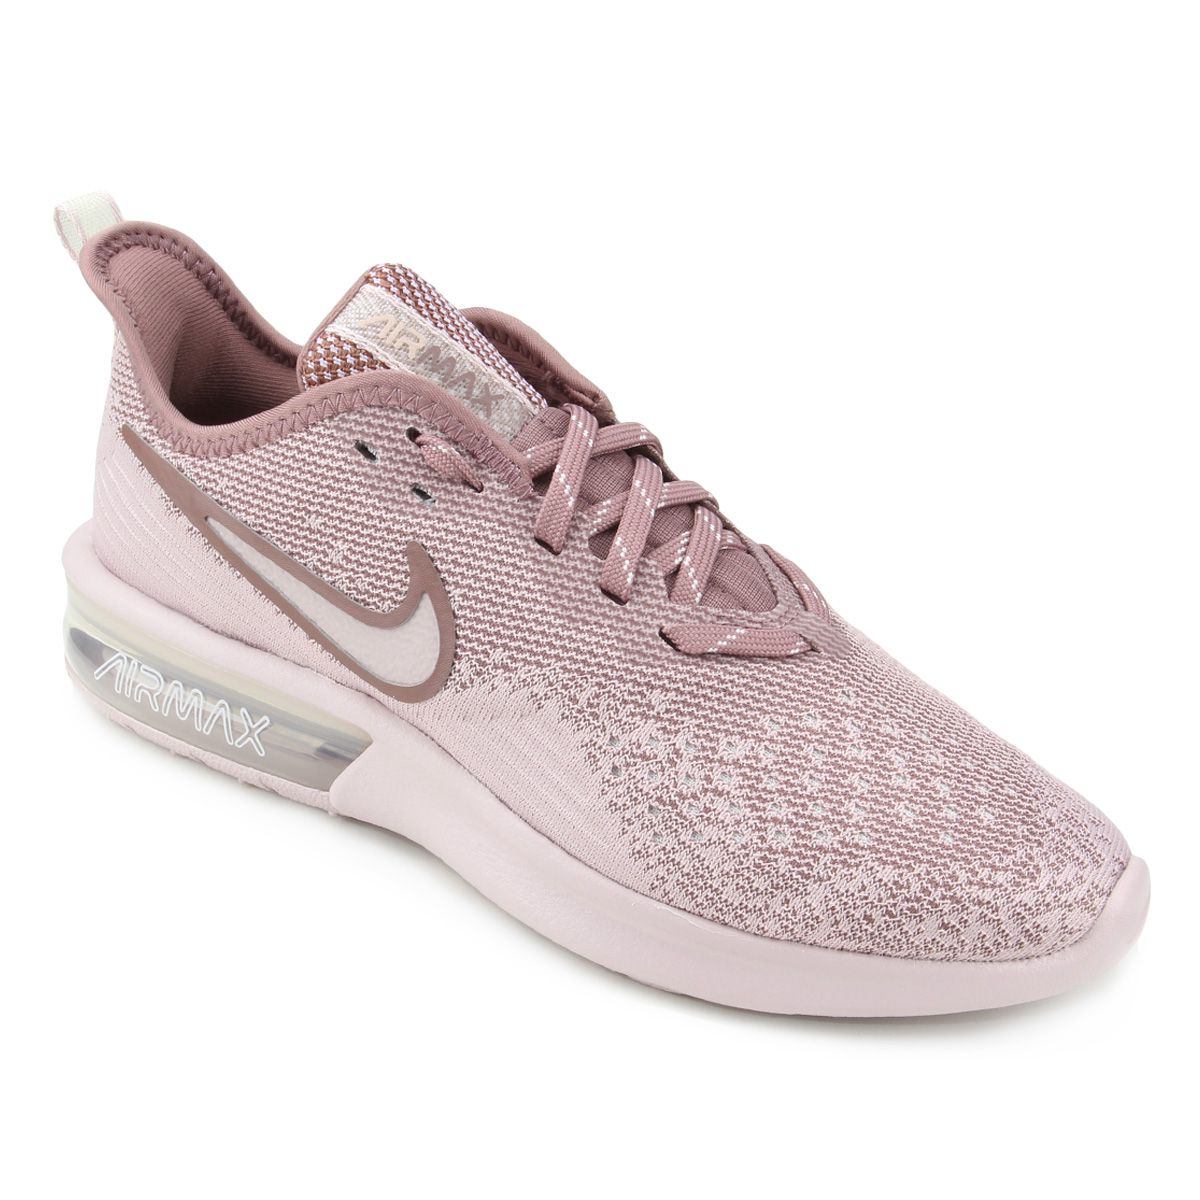 Tenis Nike Air Max Sequent 4 - Ao4486-600